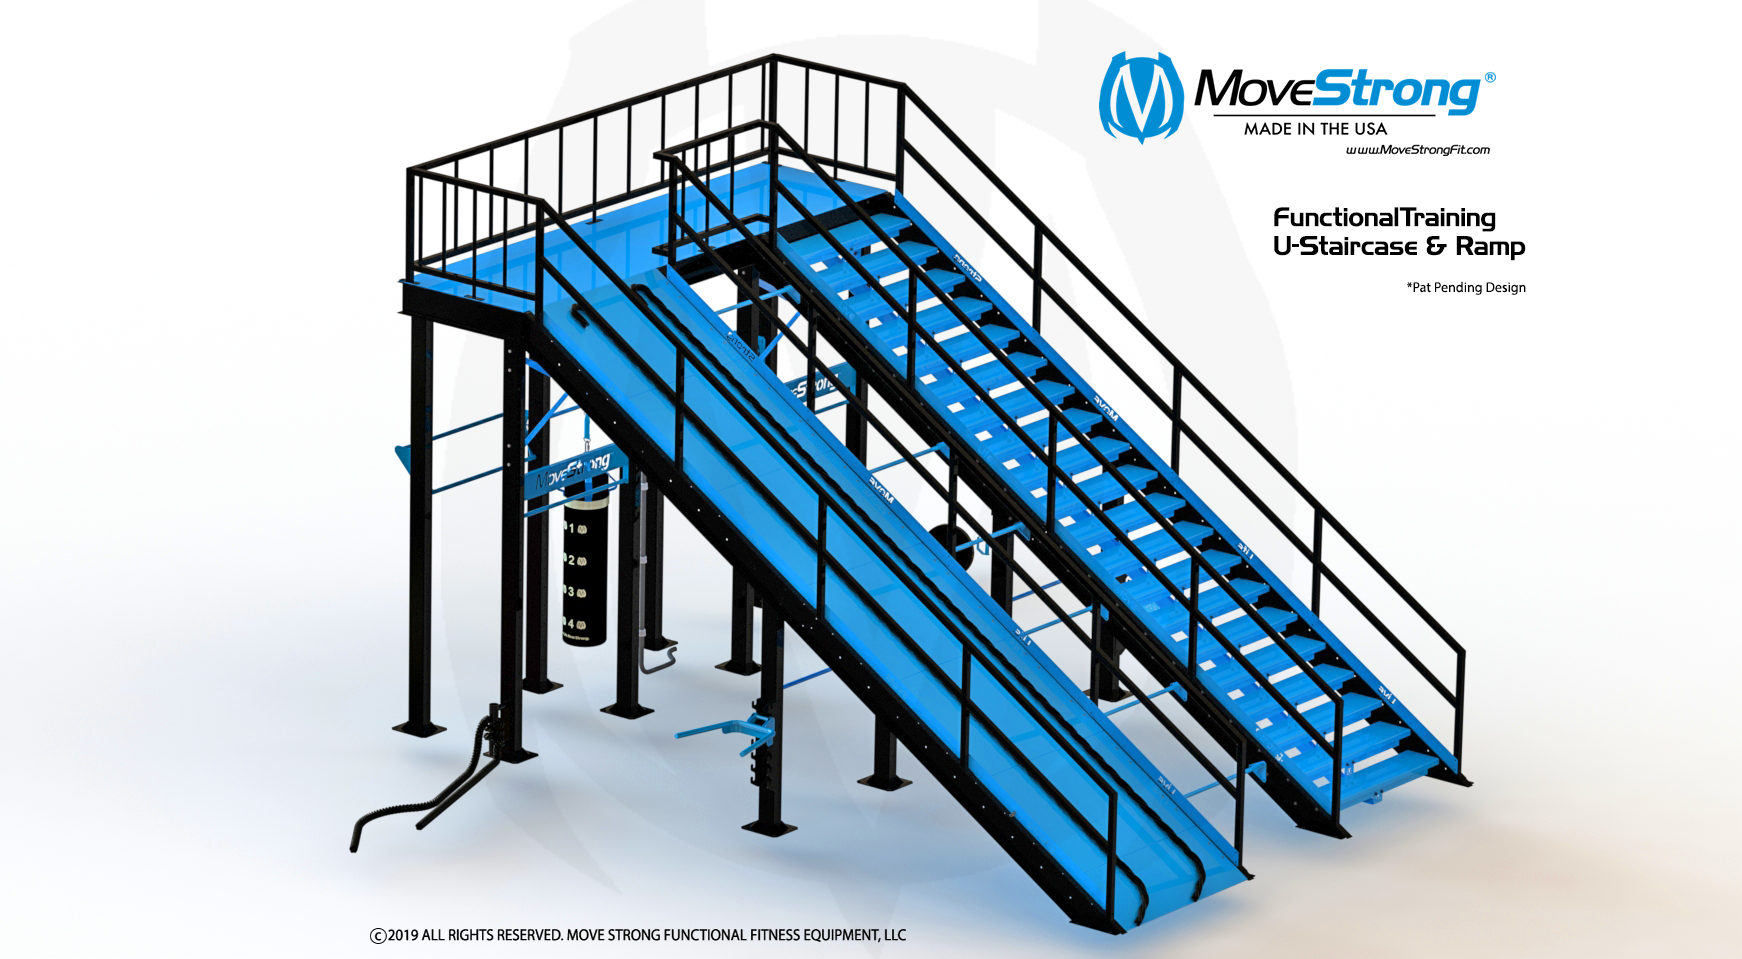 Functional Training Station with Stairs and Ramp